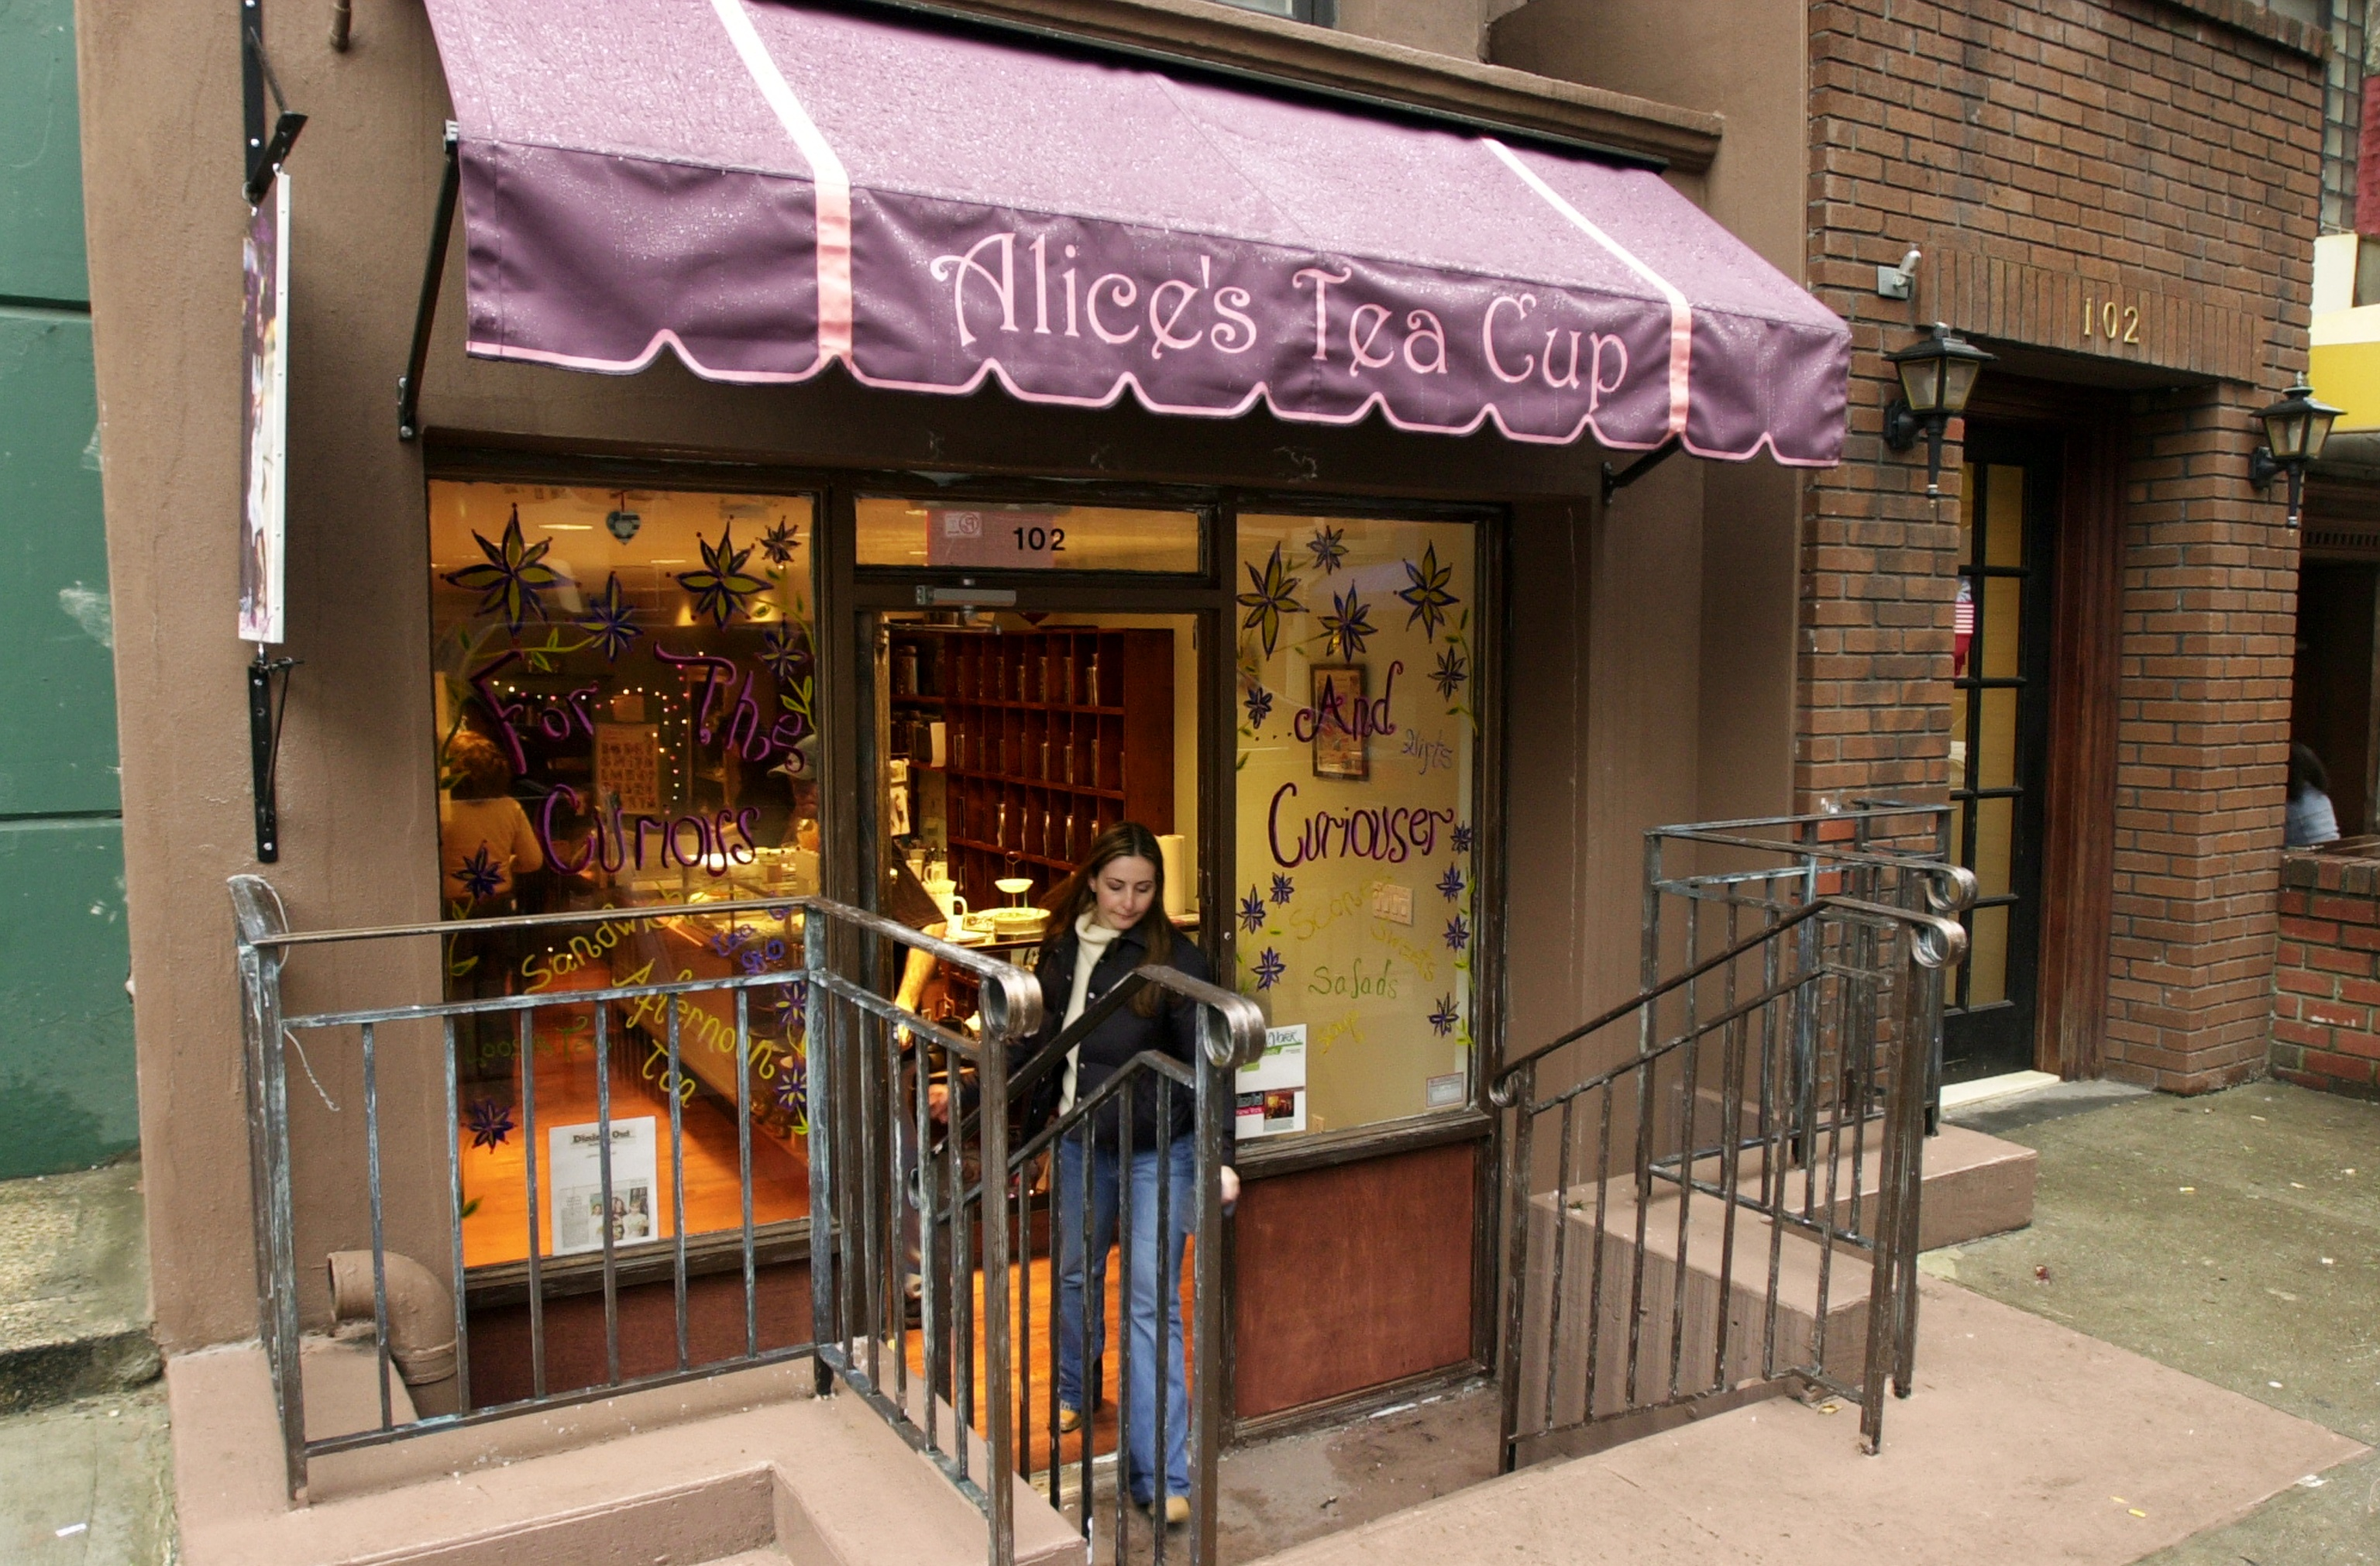 A person exits the front door of the original Upper West Side location of Alice's Tea Cup in Manhattan.